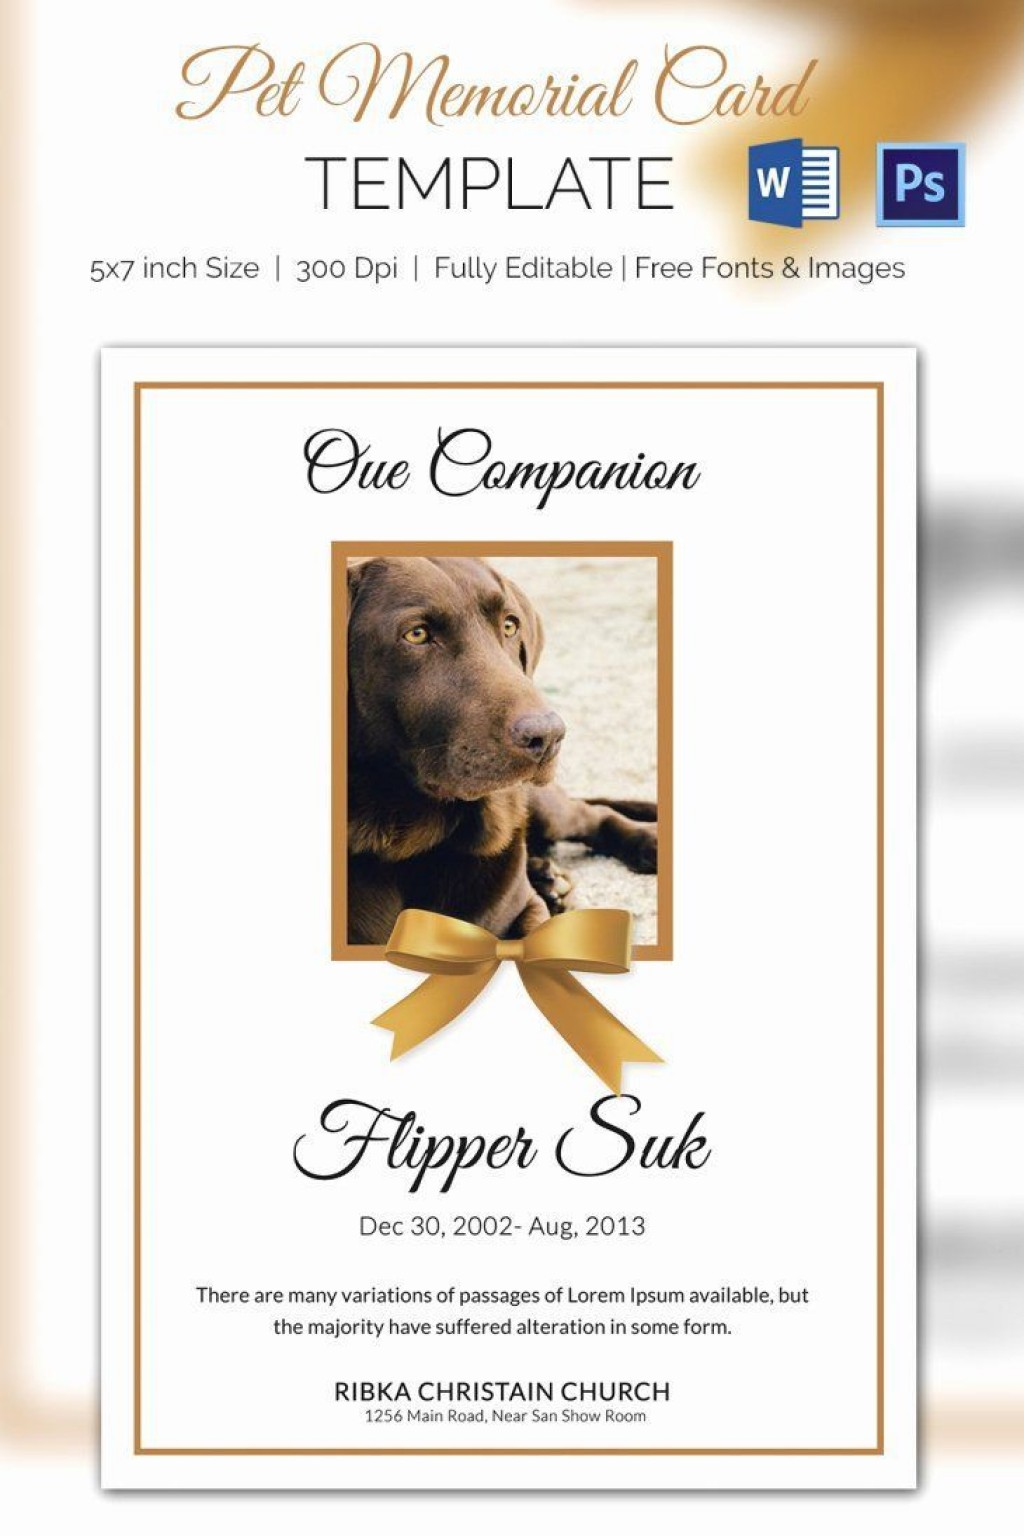 003 Awesome Memorial Card Template Free Download Design Large